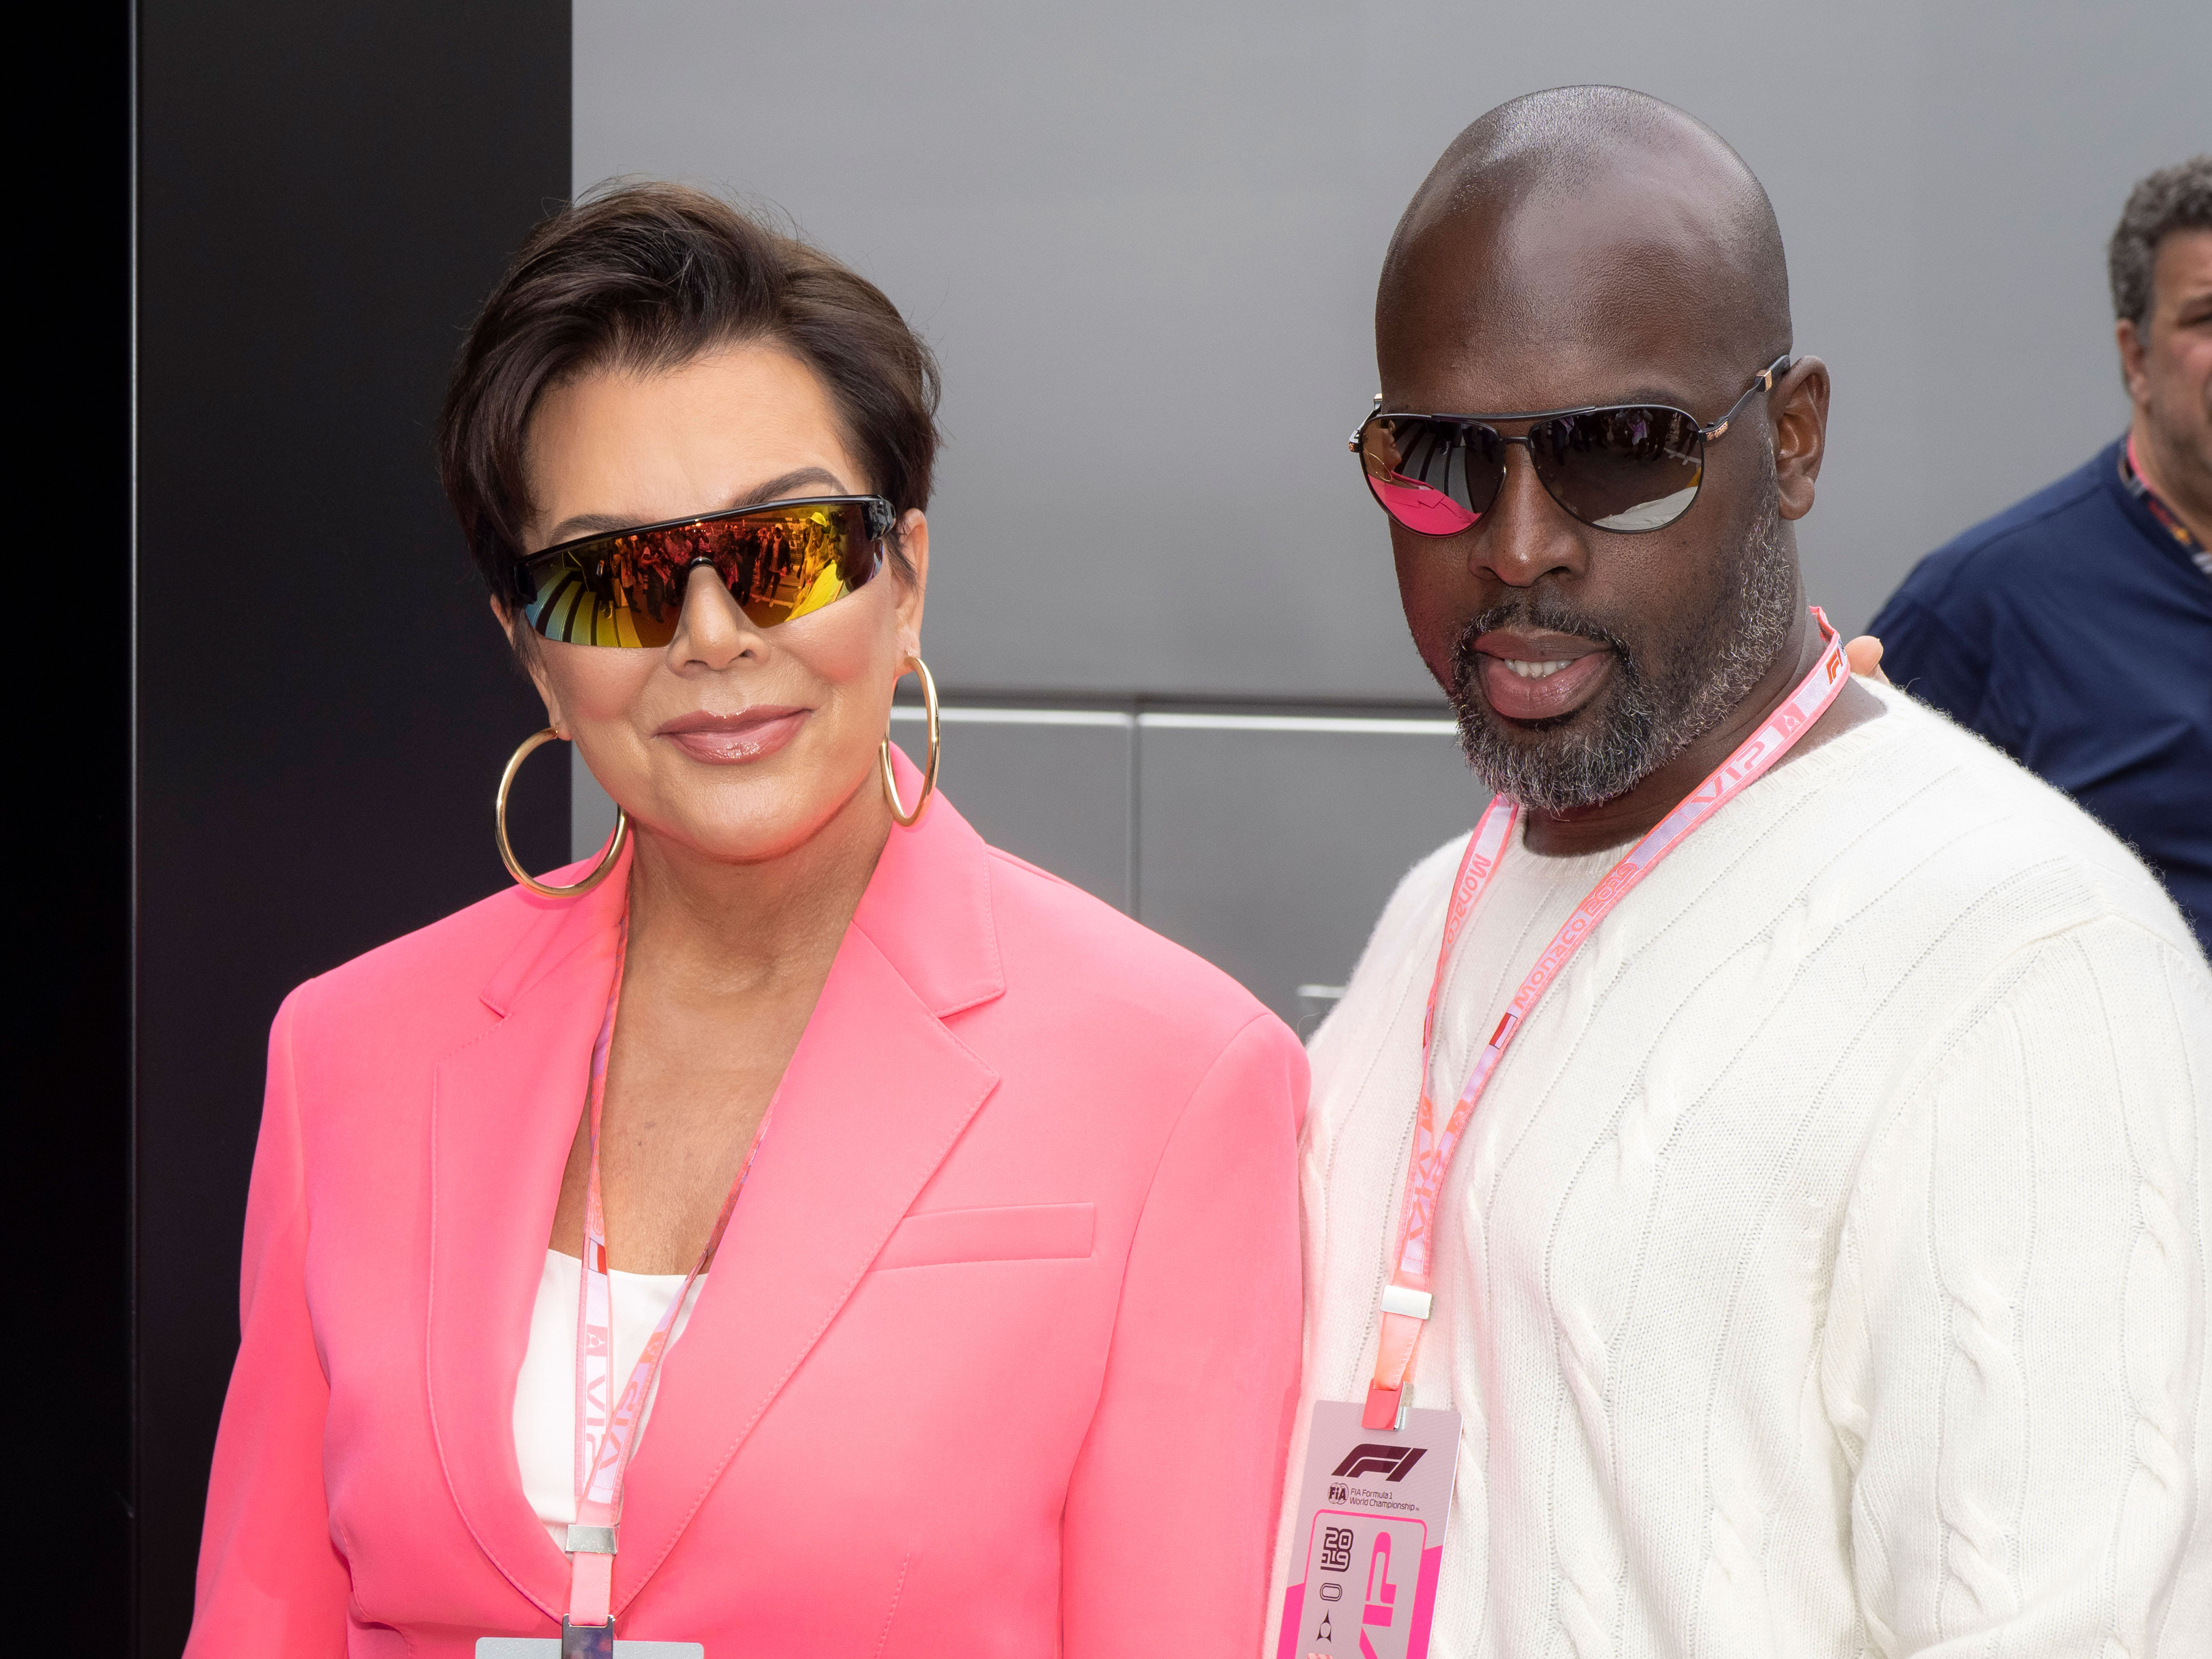 Scott Disick furious after Corey Gamble threatens to 'whip' his seven year old daughter Penelope